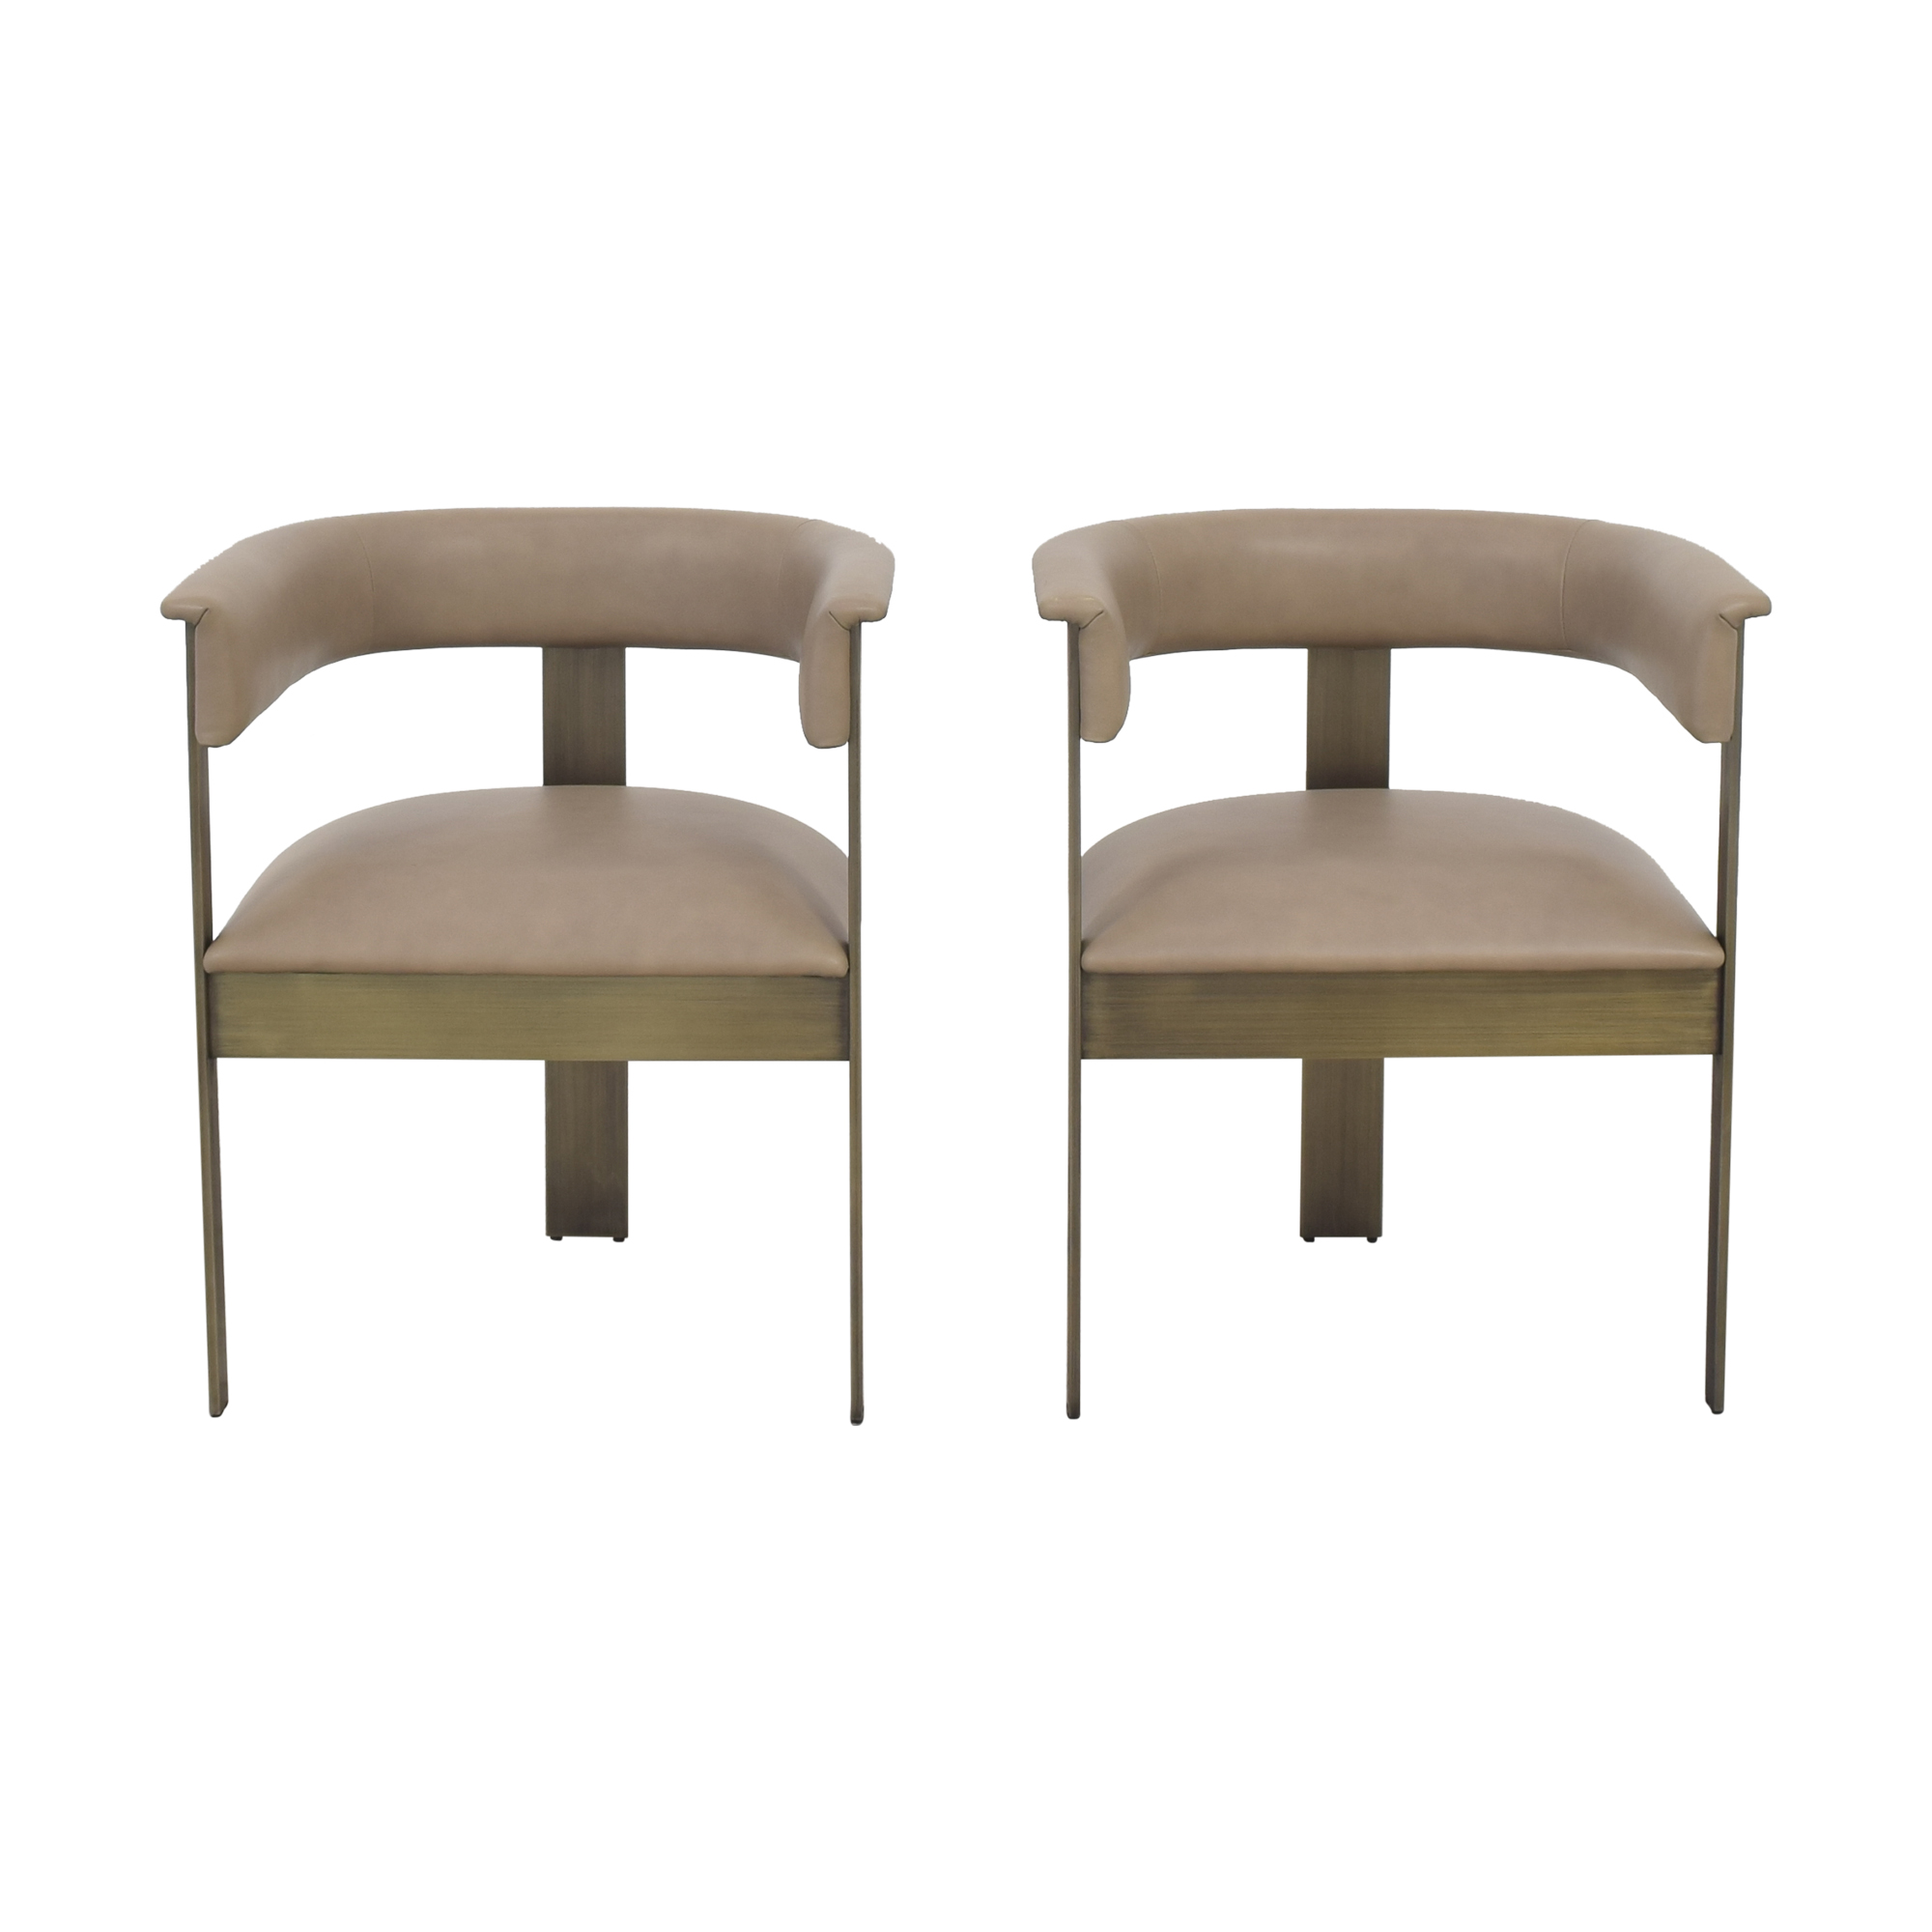 Interlude Home Interlude Home Darcy Dining Arm Chairs price